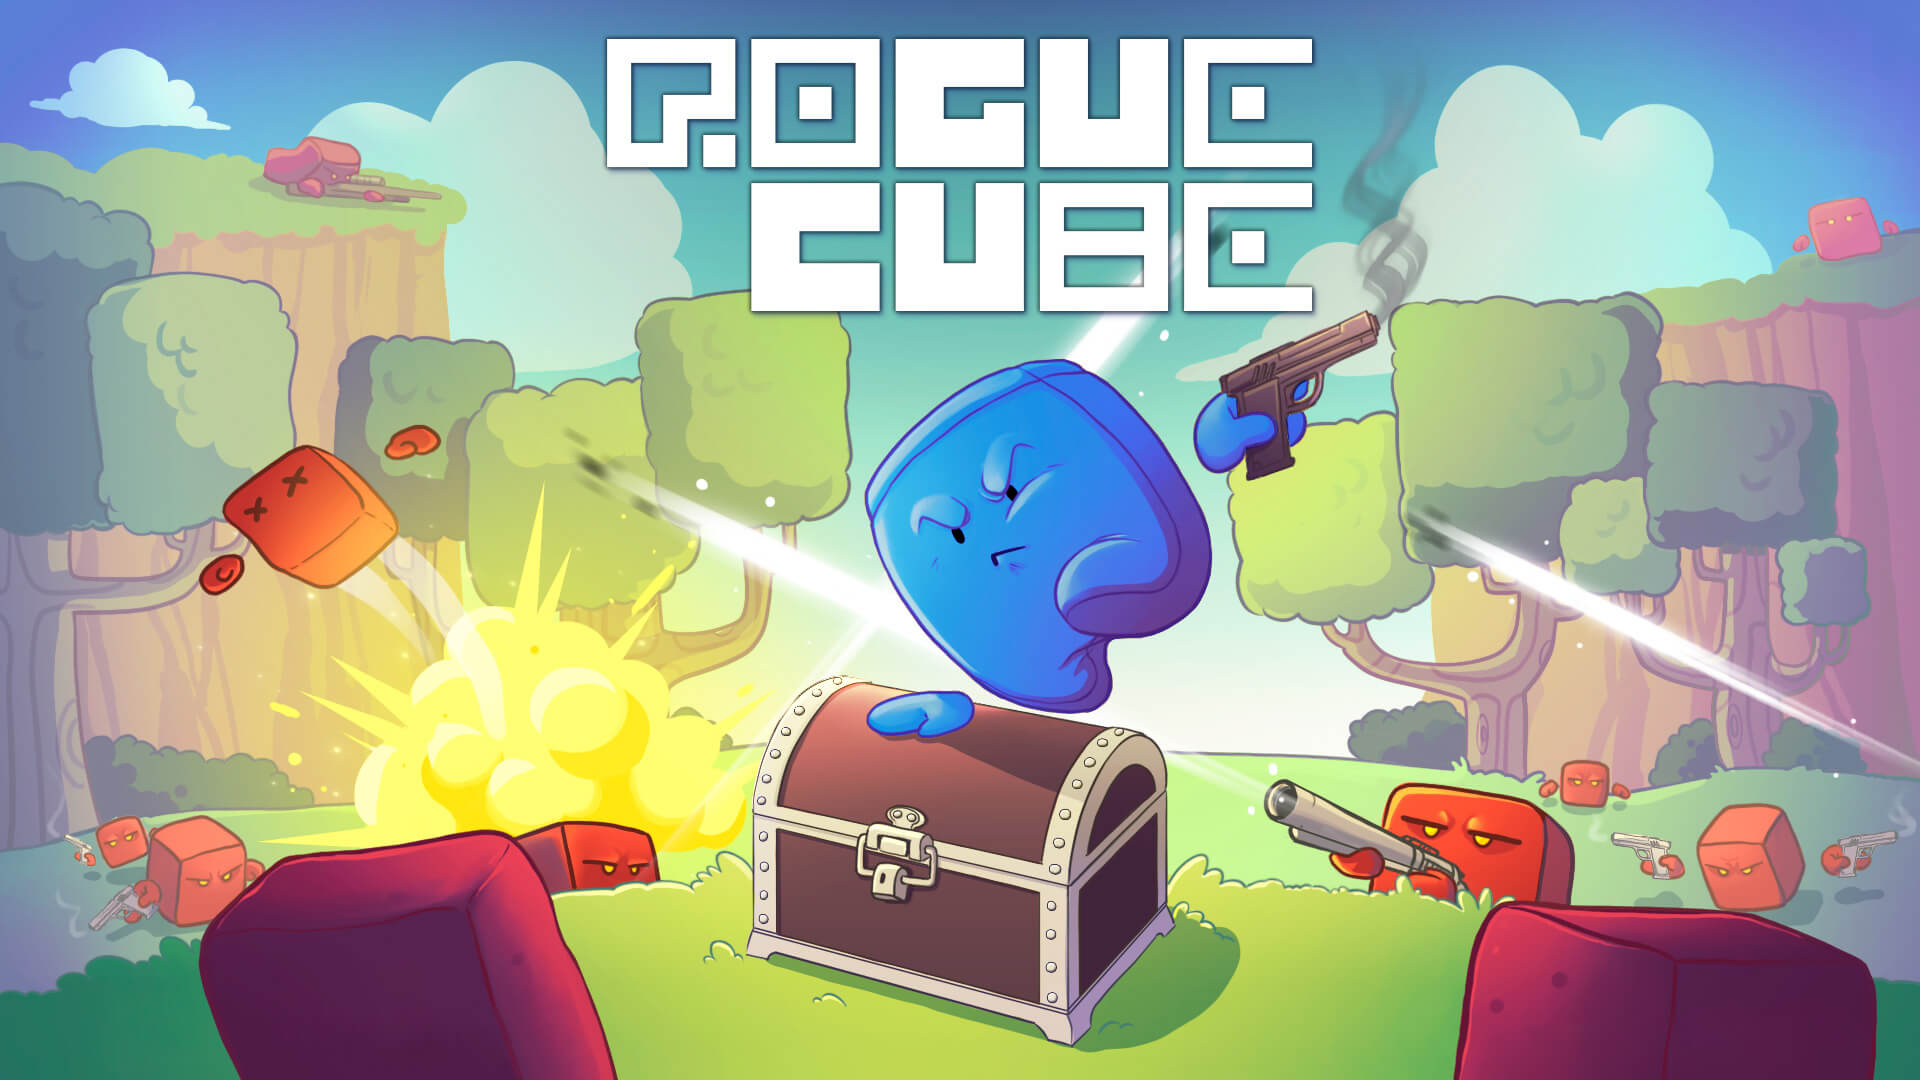 RogueCube Free PC Download